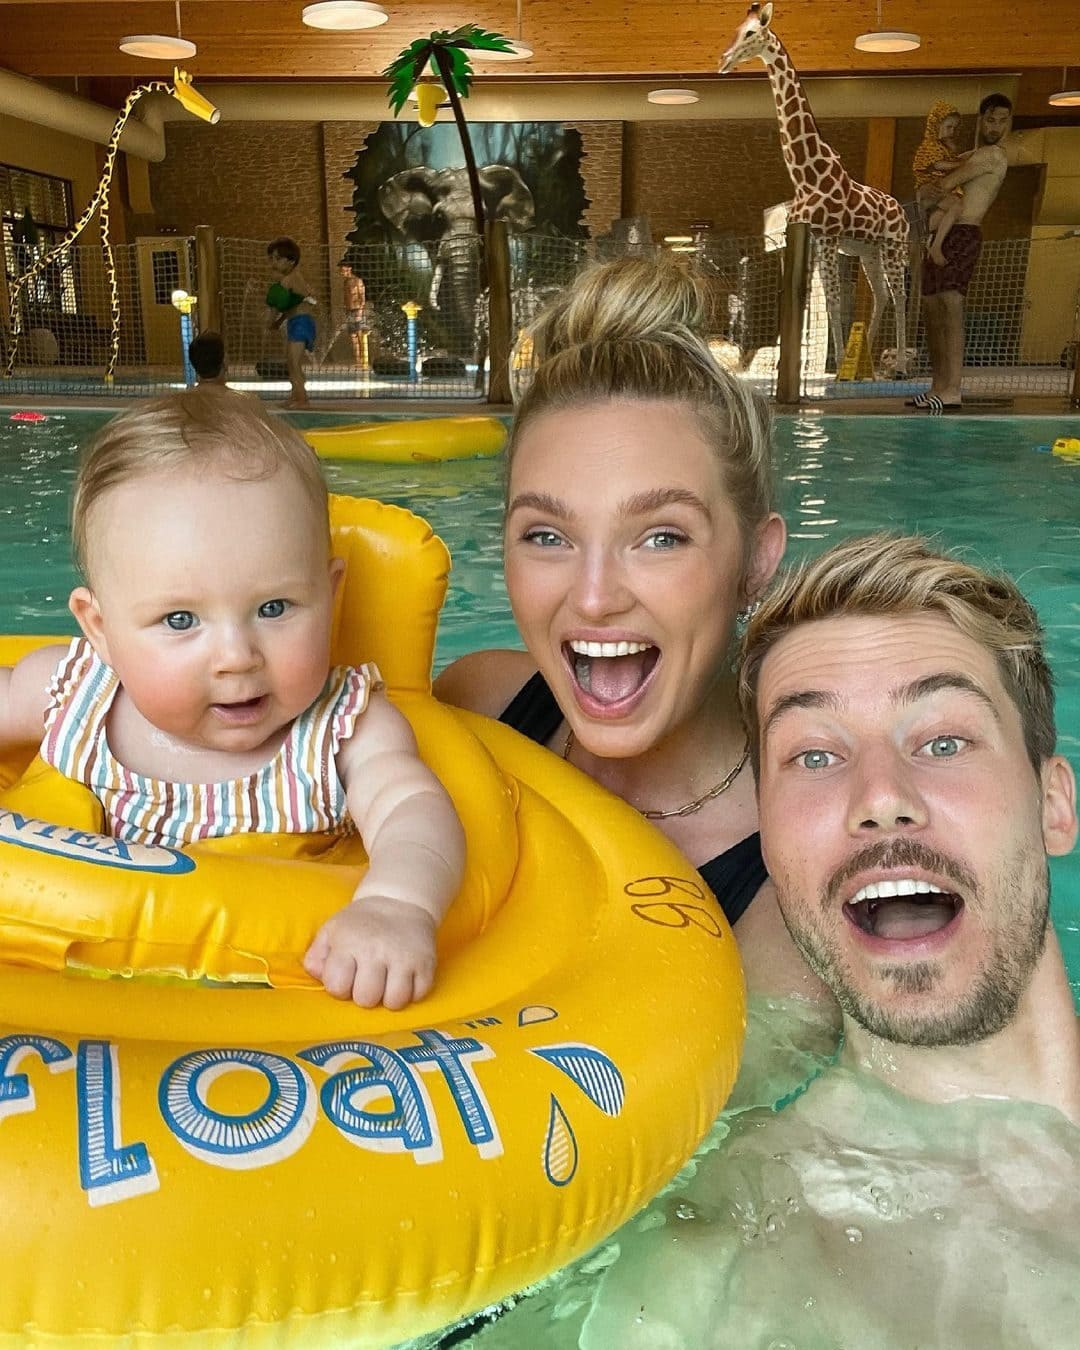 Romee Strijd with her Husband and their Child